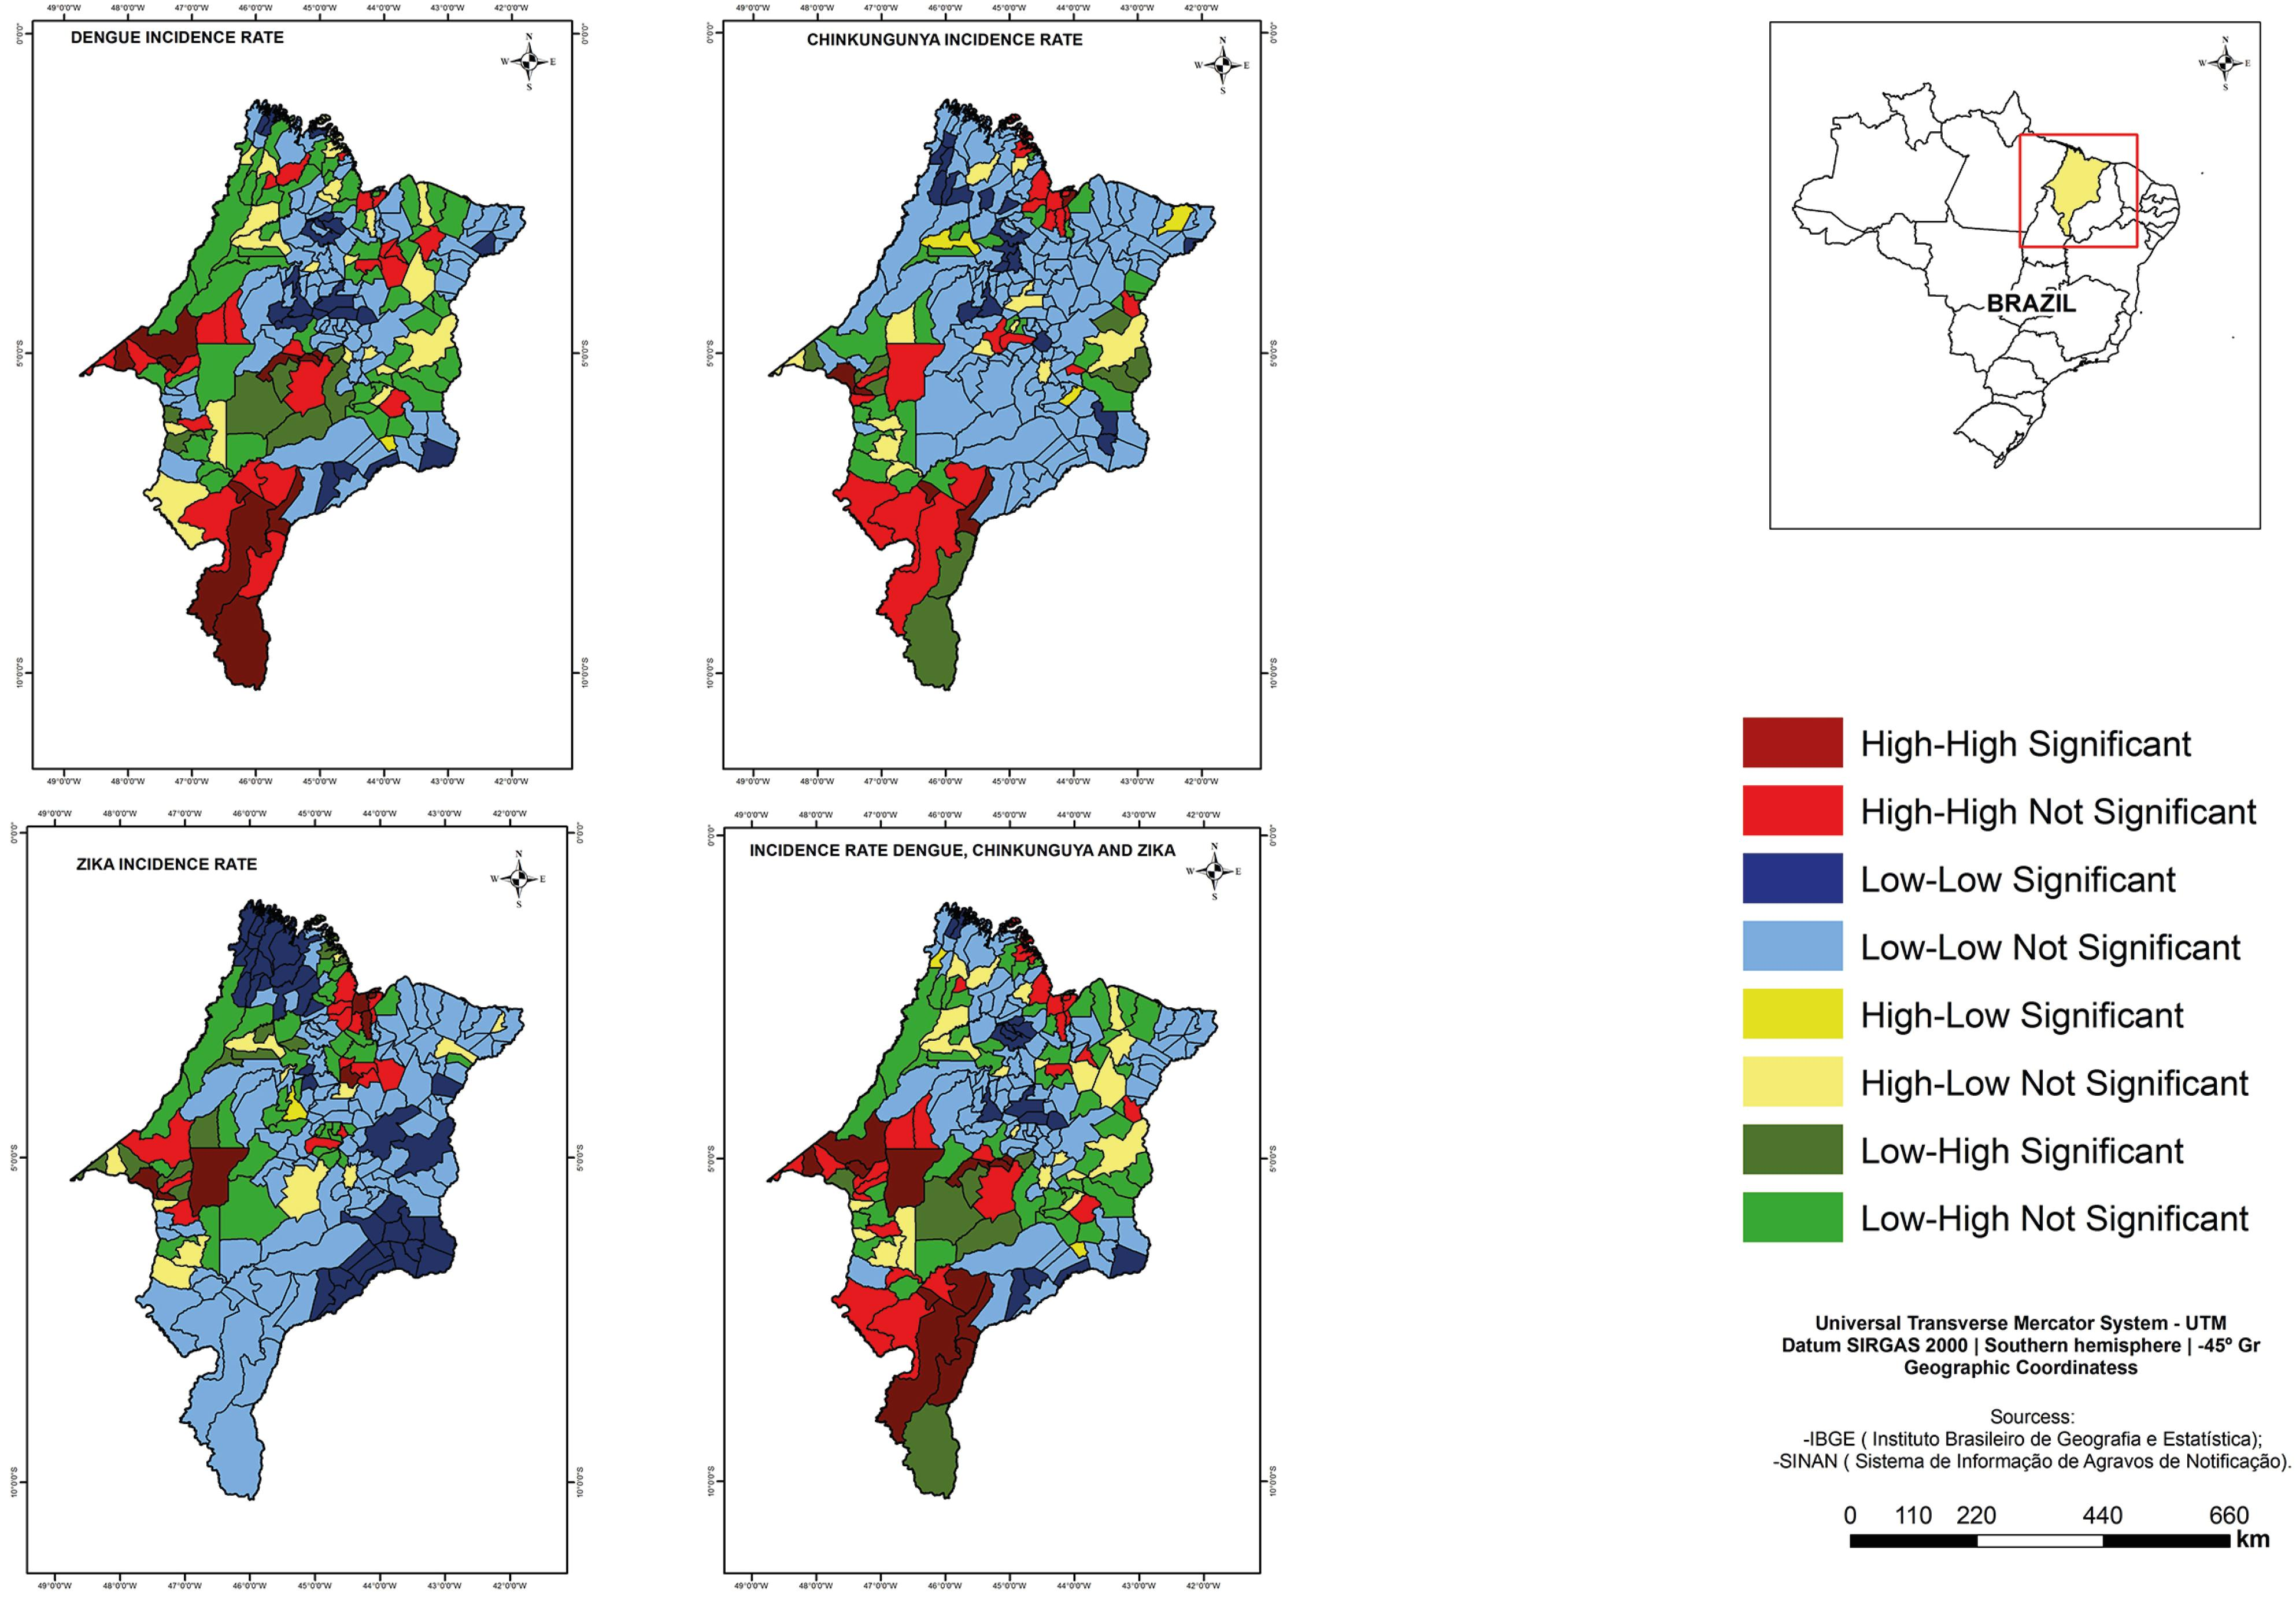 Lisa Cluster Map incidence rates of dengue fever, chikungunya fever and zika virus infections and incidence rates of dengue, chikungunya, and zika. Maranhao, 2015-2016.